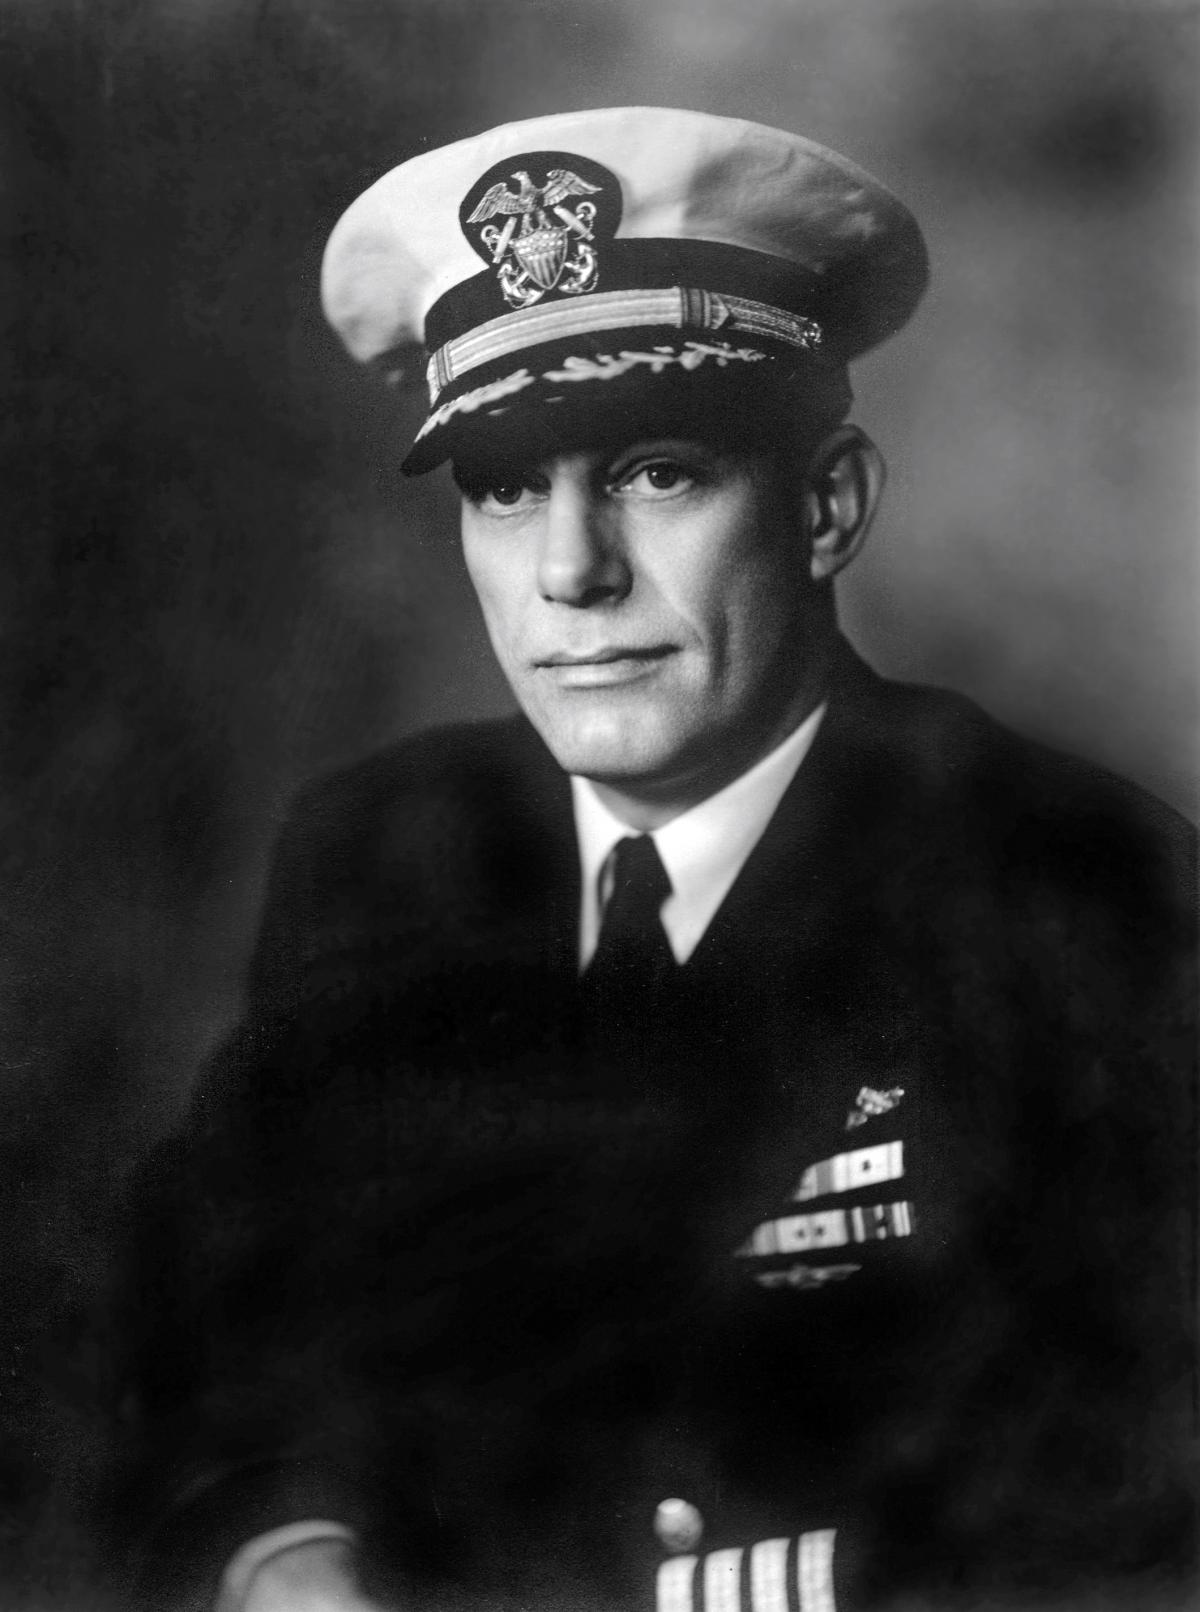 Portrait of Lieutenant Commander John Murphy, U.S. Navy